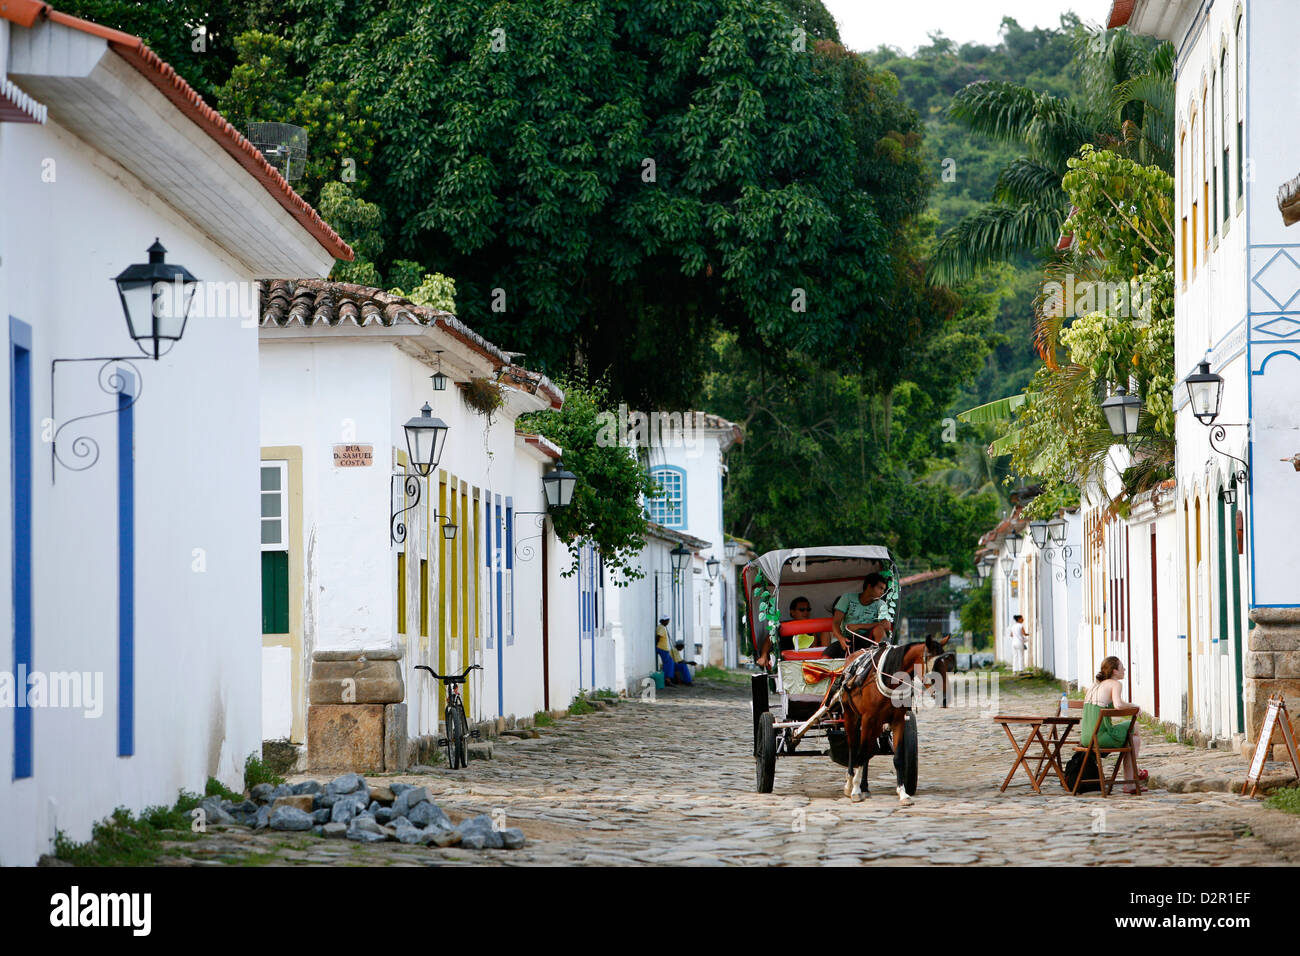 Typical colonial houses in the historic part of Parati, Rio de Janeiro State, Brazil, South America - Stock Image